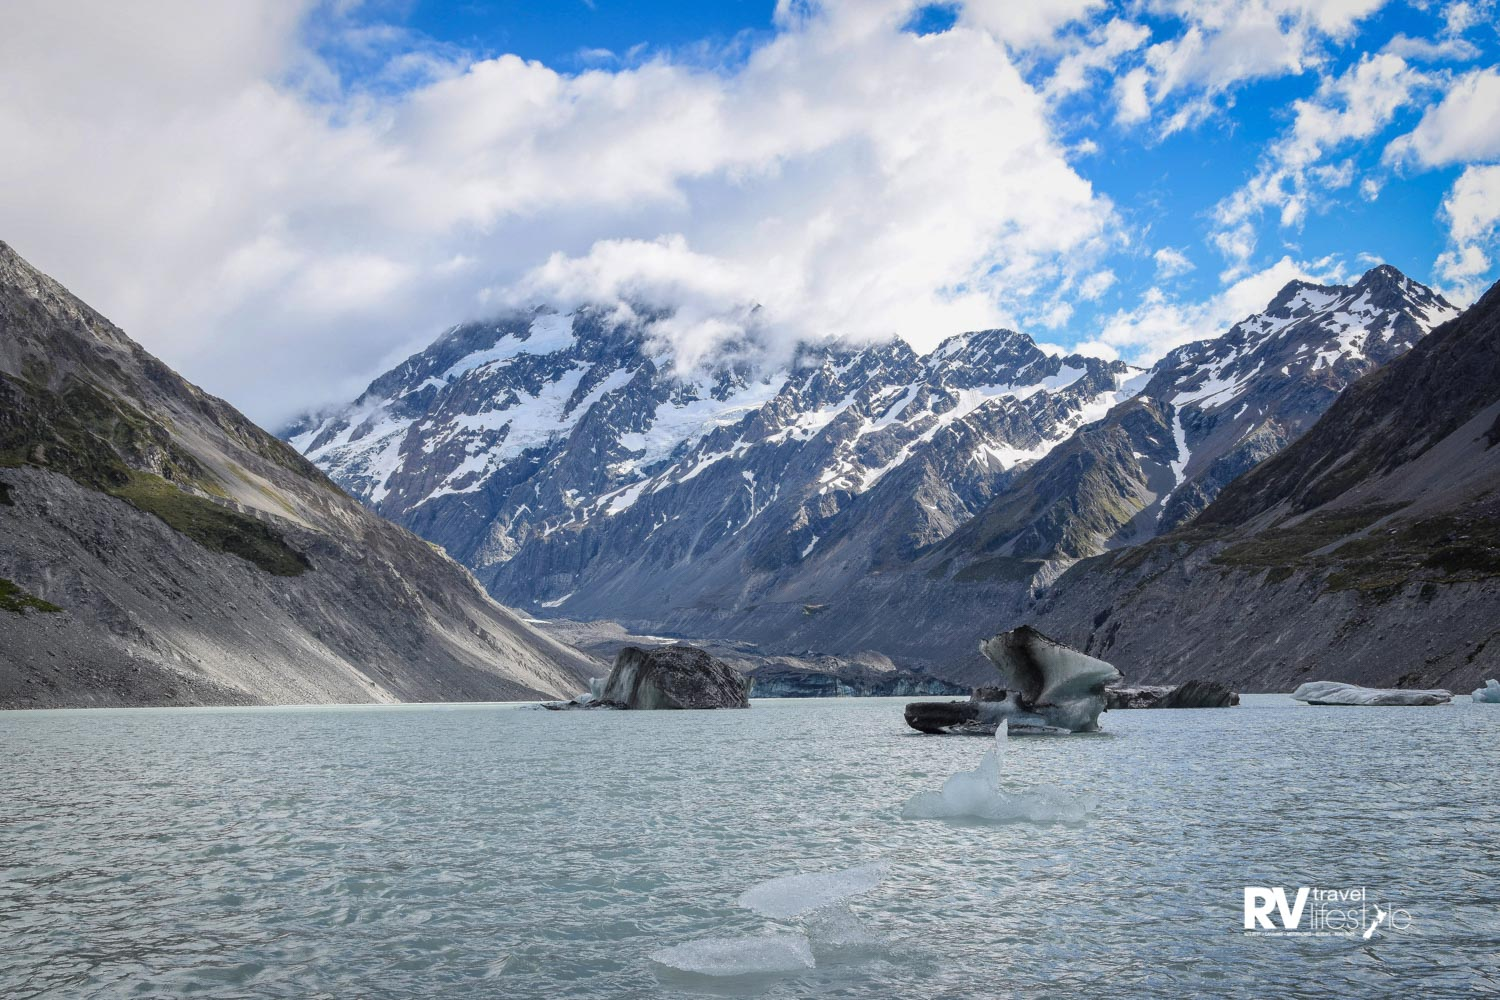 Glacial 'Hooker Lake' with Aoraki/Mt Cook in the background